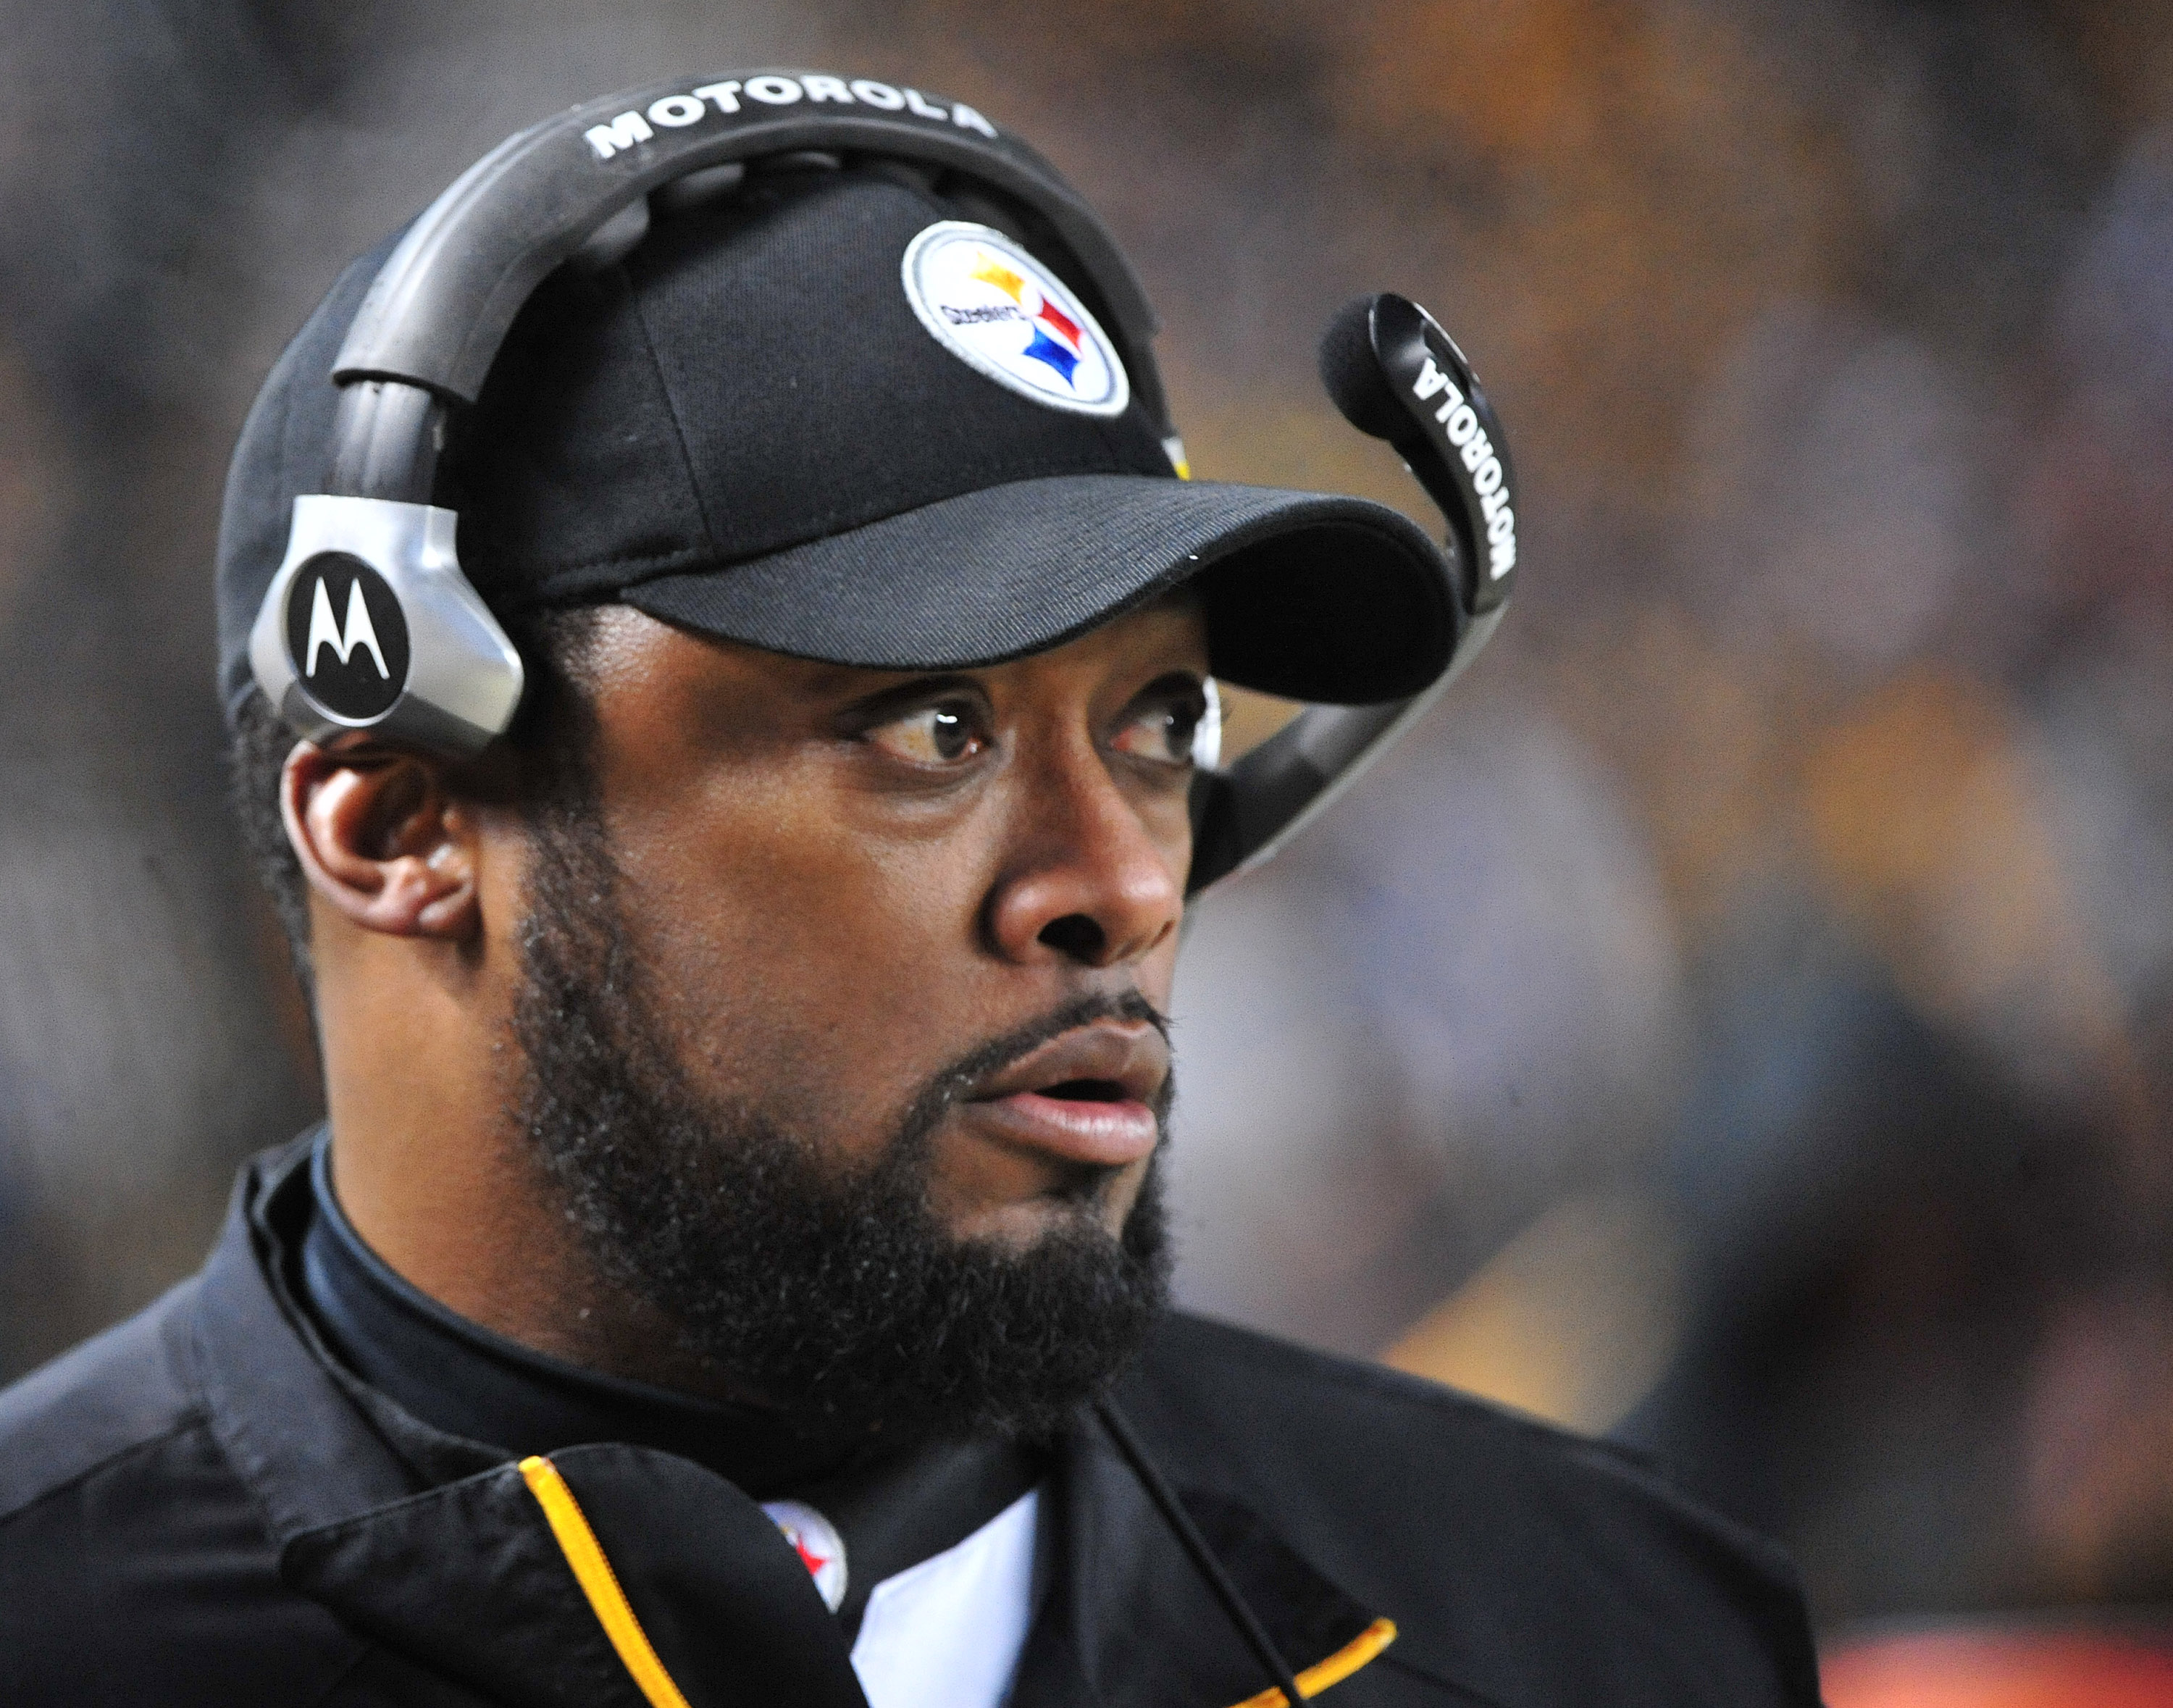 Steelers' head coach Mike Tomlin in Pittsburgh